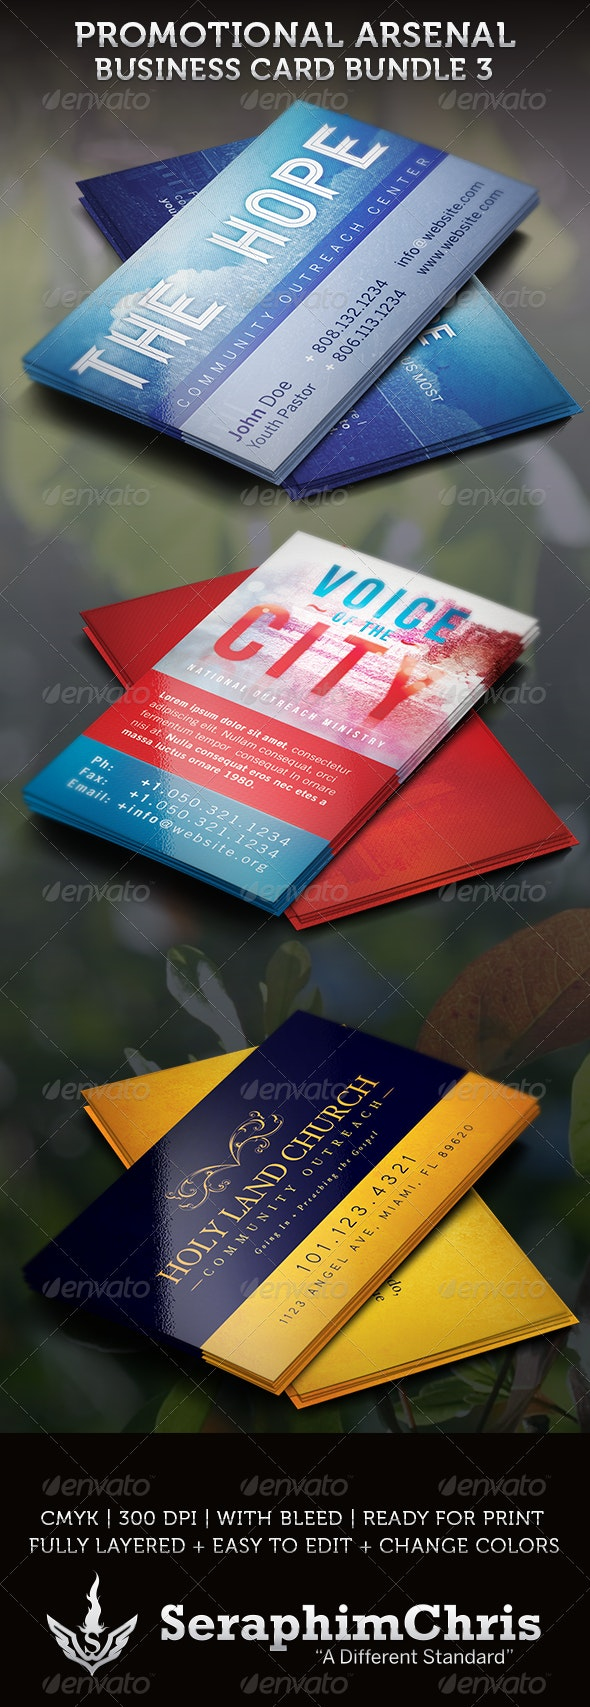 Promotional Arsenal Business Card Bundle 3 - Creative Business Cards